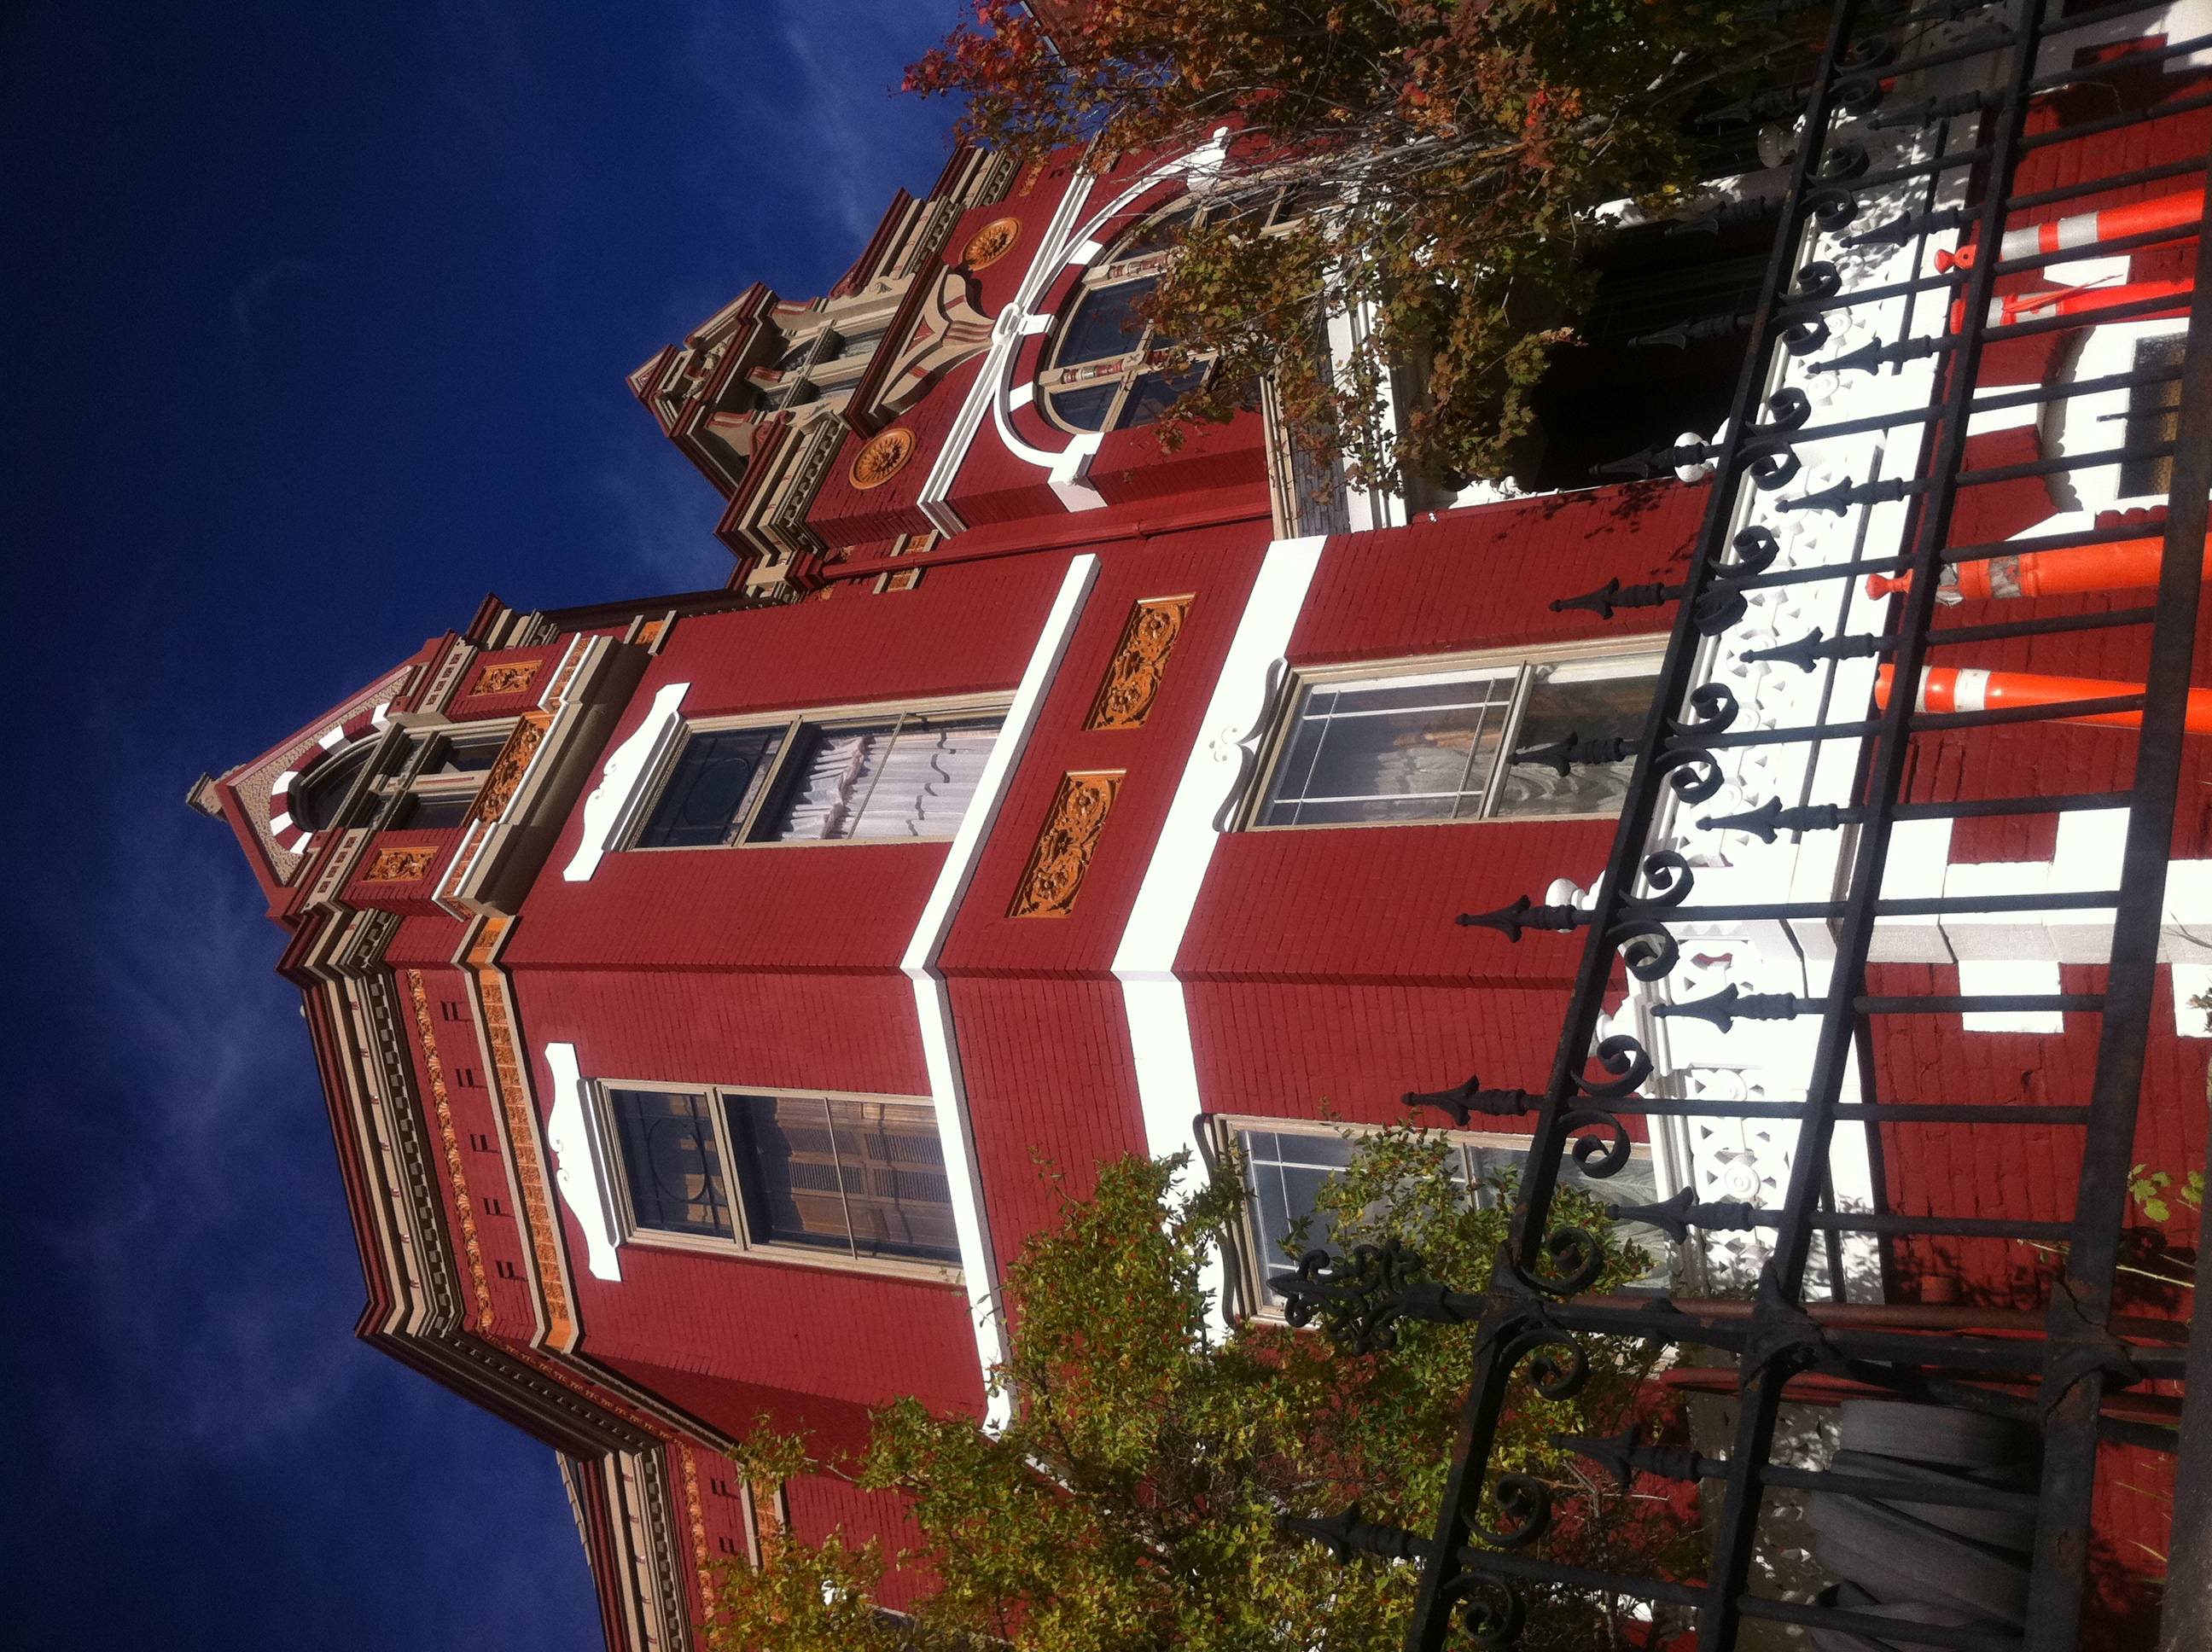 The Copper King Mansion, the W.A. Clark home in Butte, Montana. Built 1884-1888. c. Bill Dedman